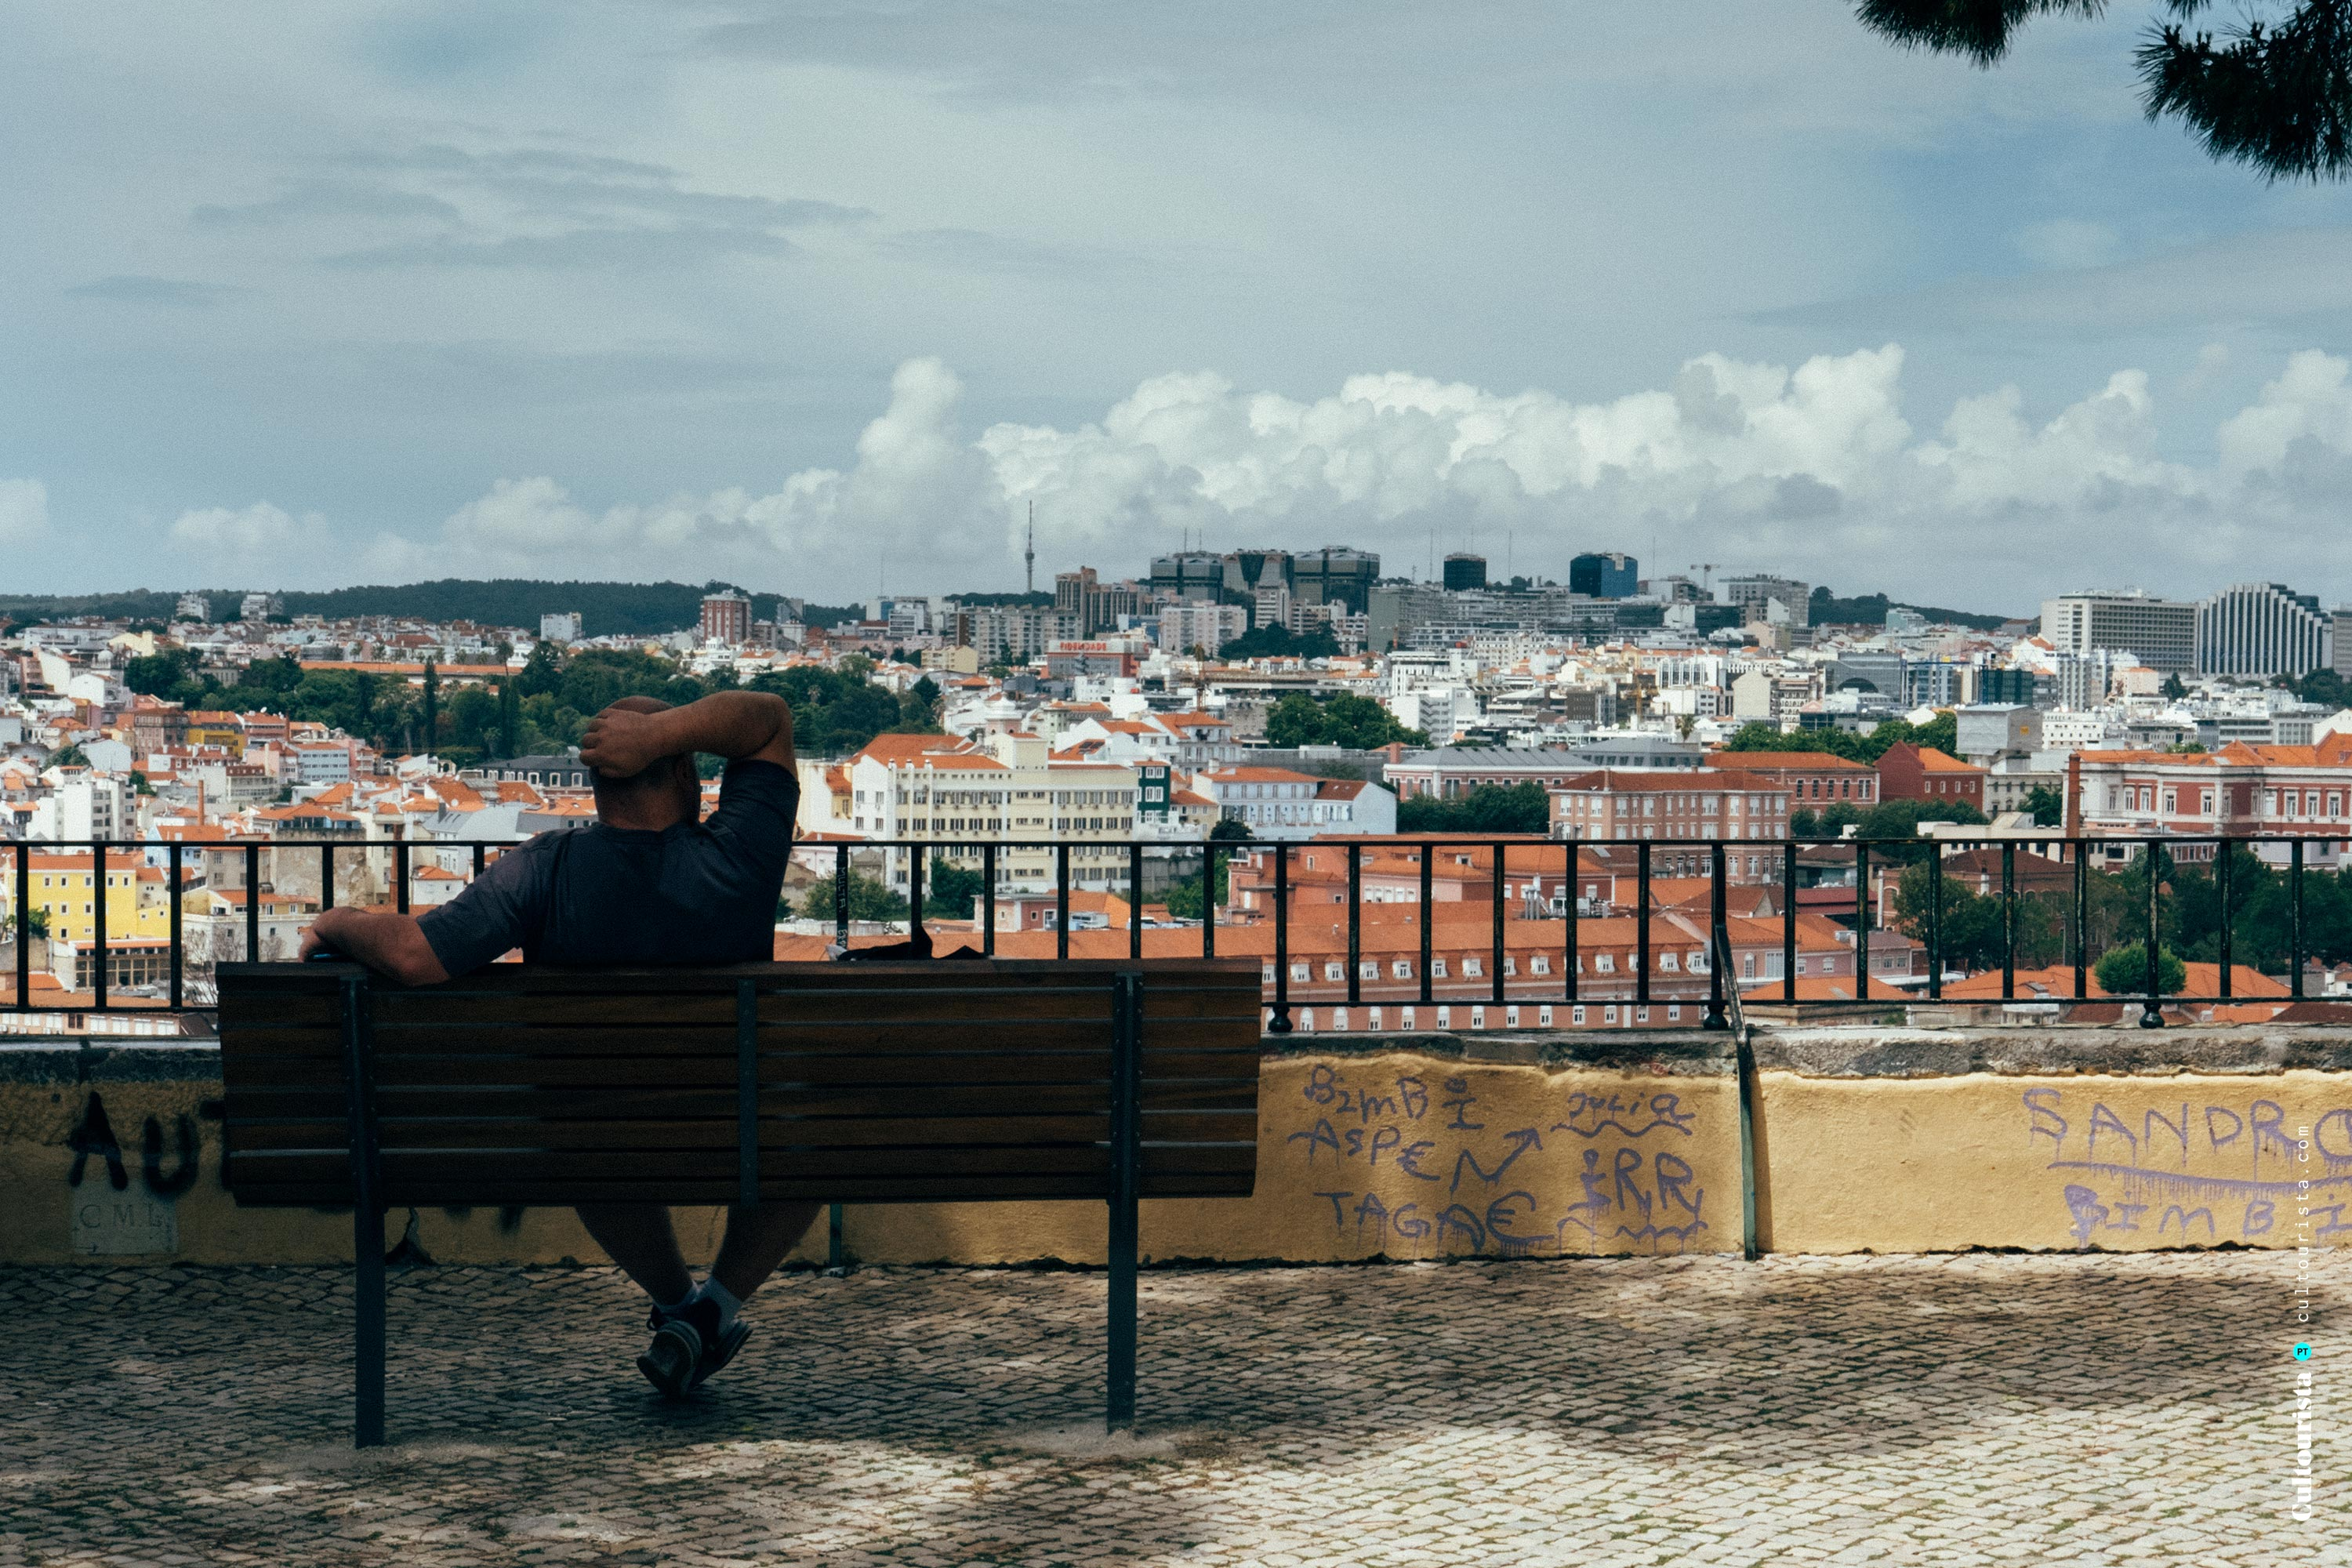 Viewpoint Graça and a person in Lisbon